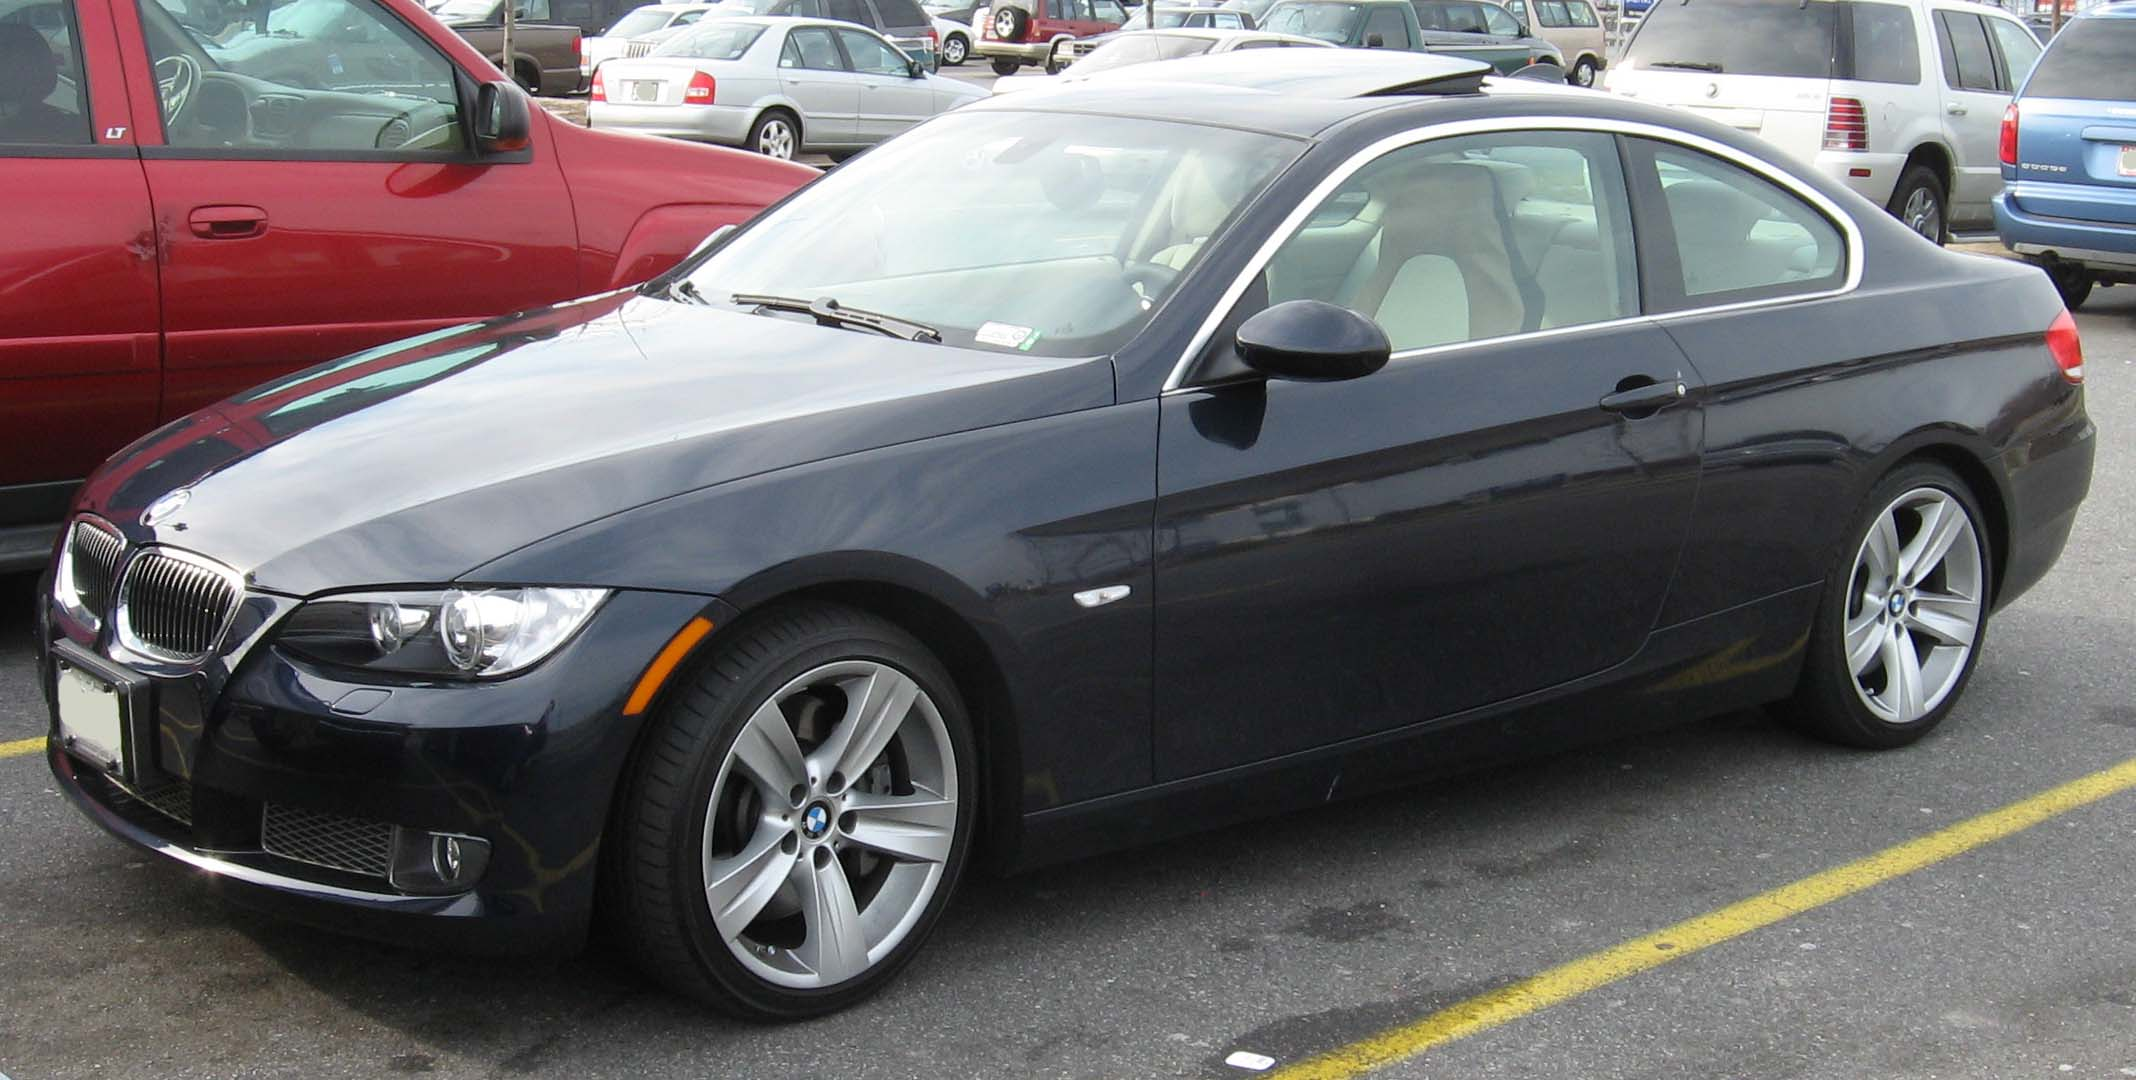 File:2007-BMW-335i-coupe.jpg